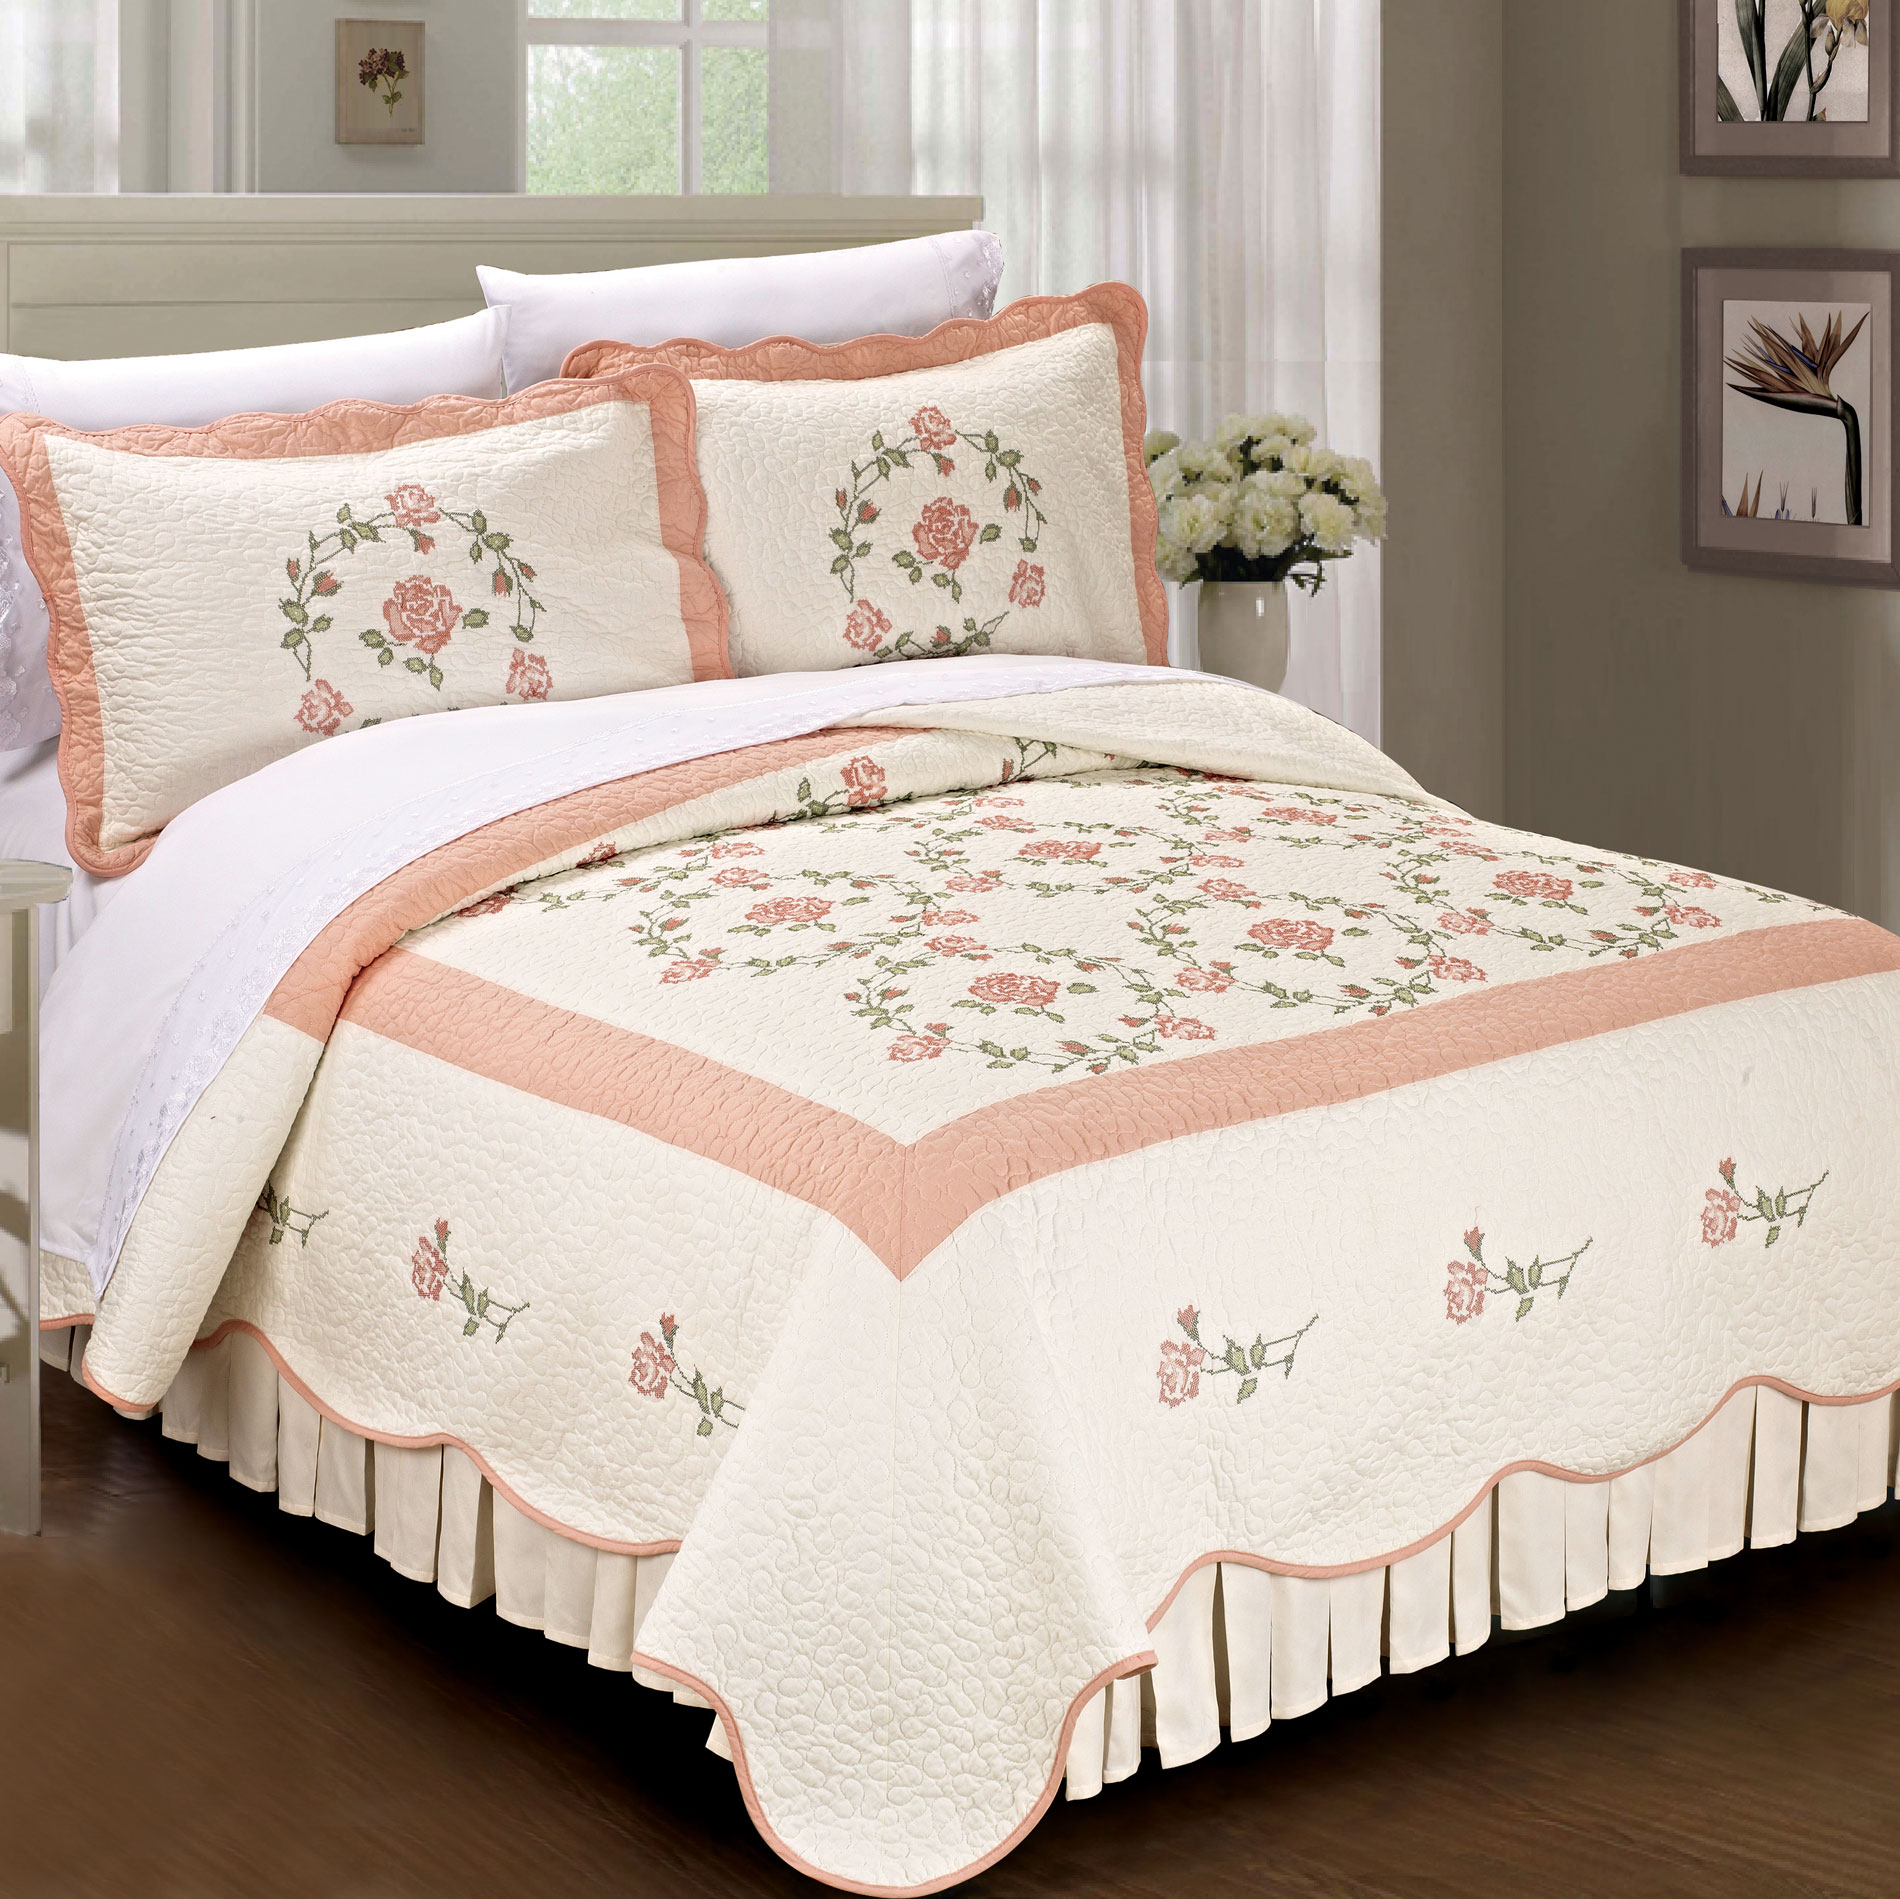 Serenta Roses 100% Cotton Quilted 3 Piece Bed Spread